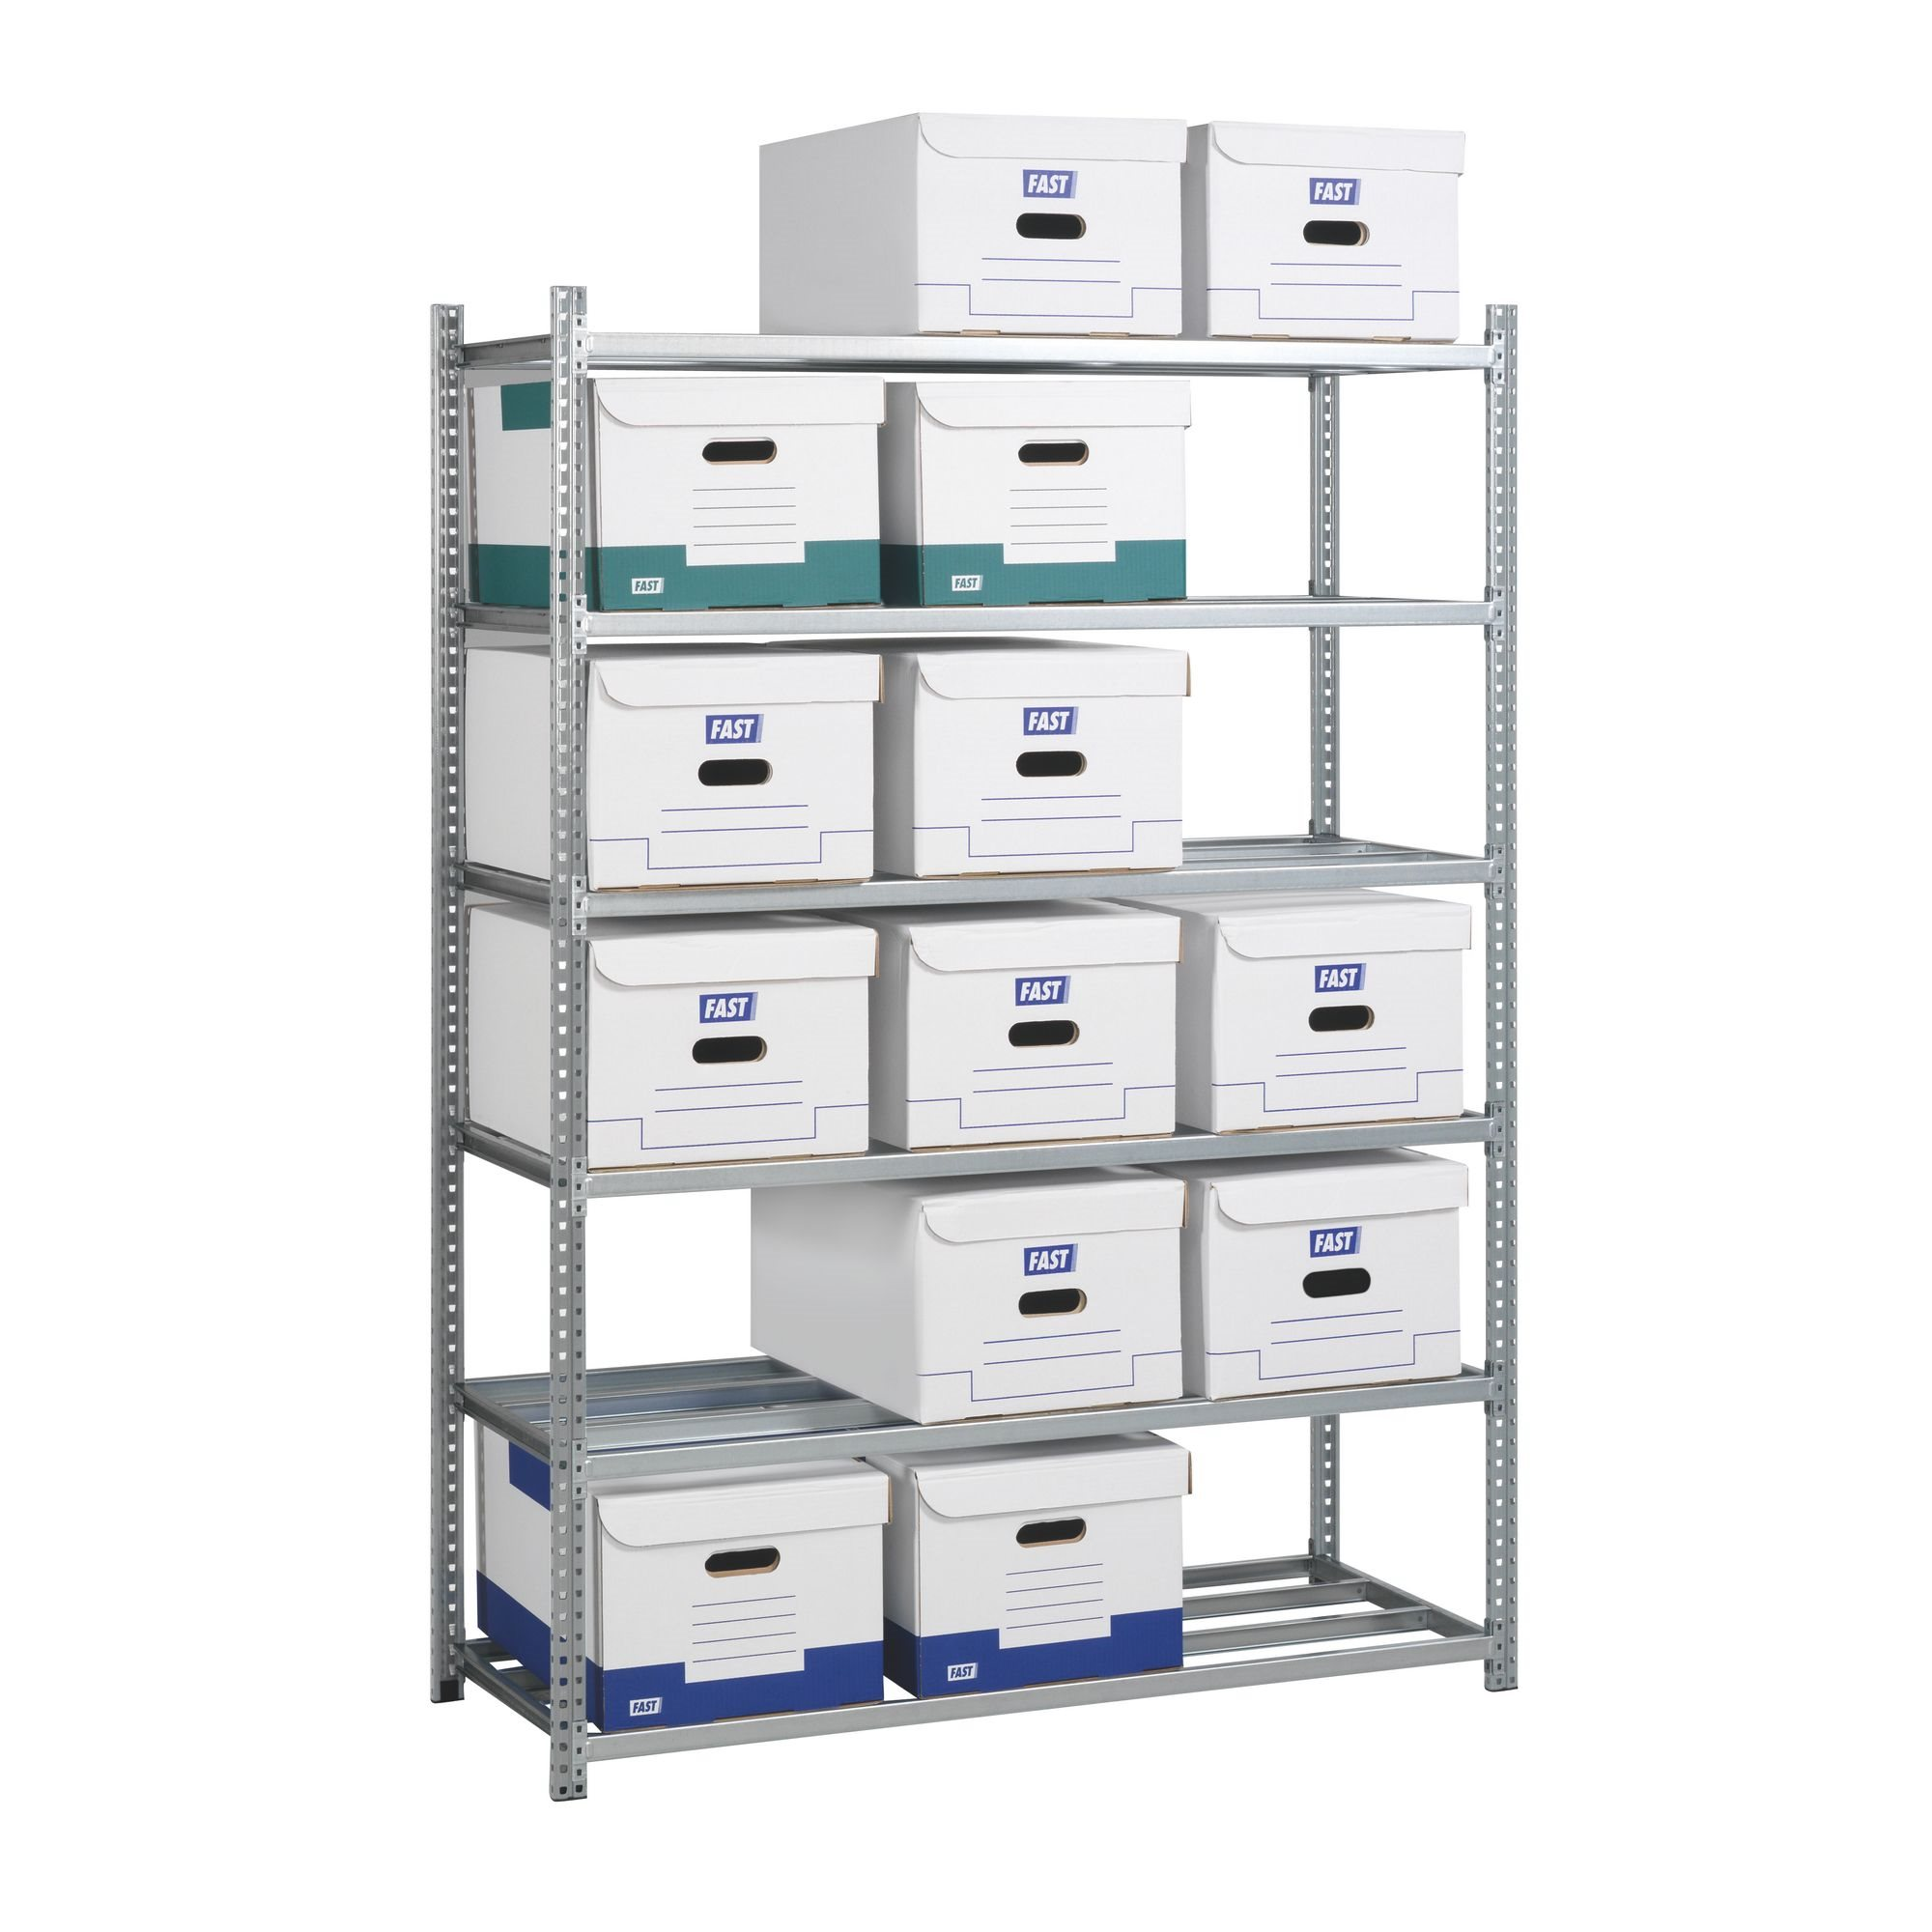 Office rack for archive boxes 176x128x50